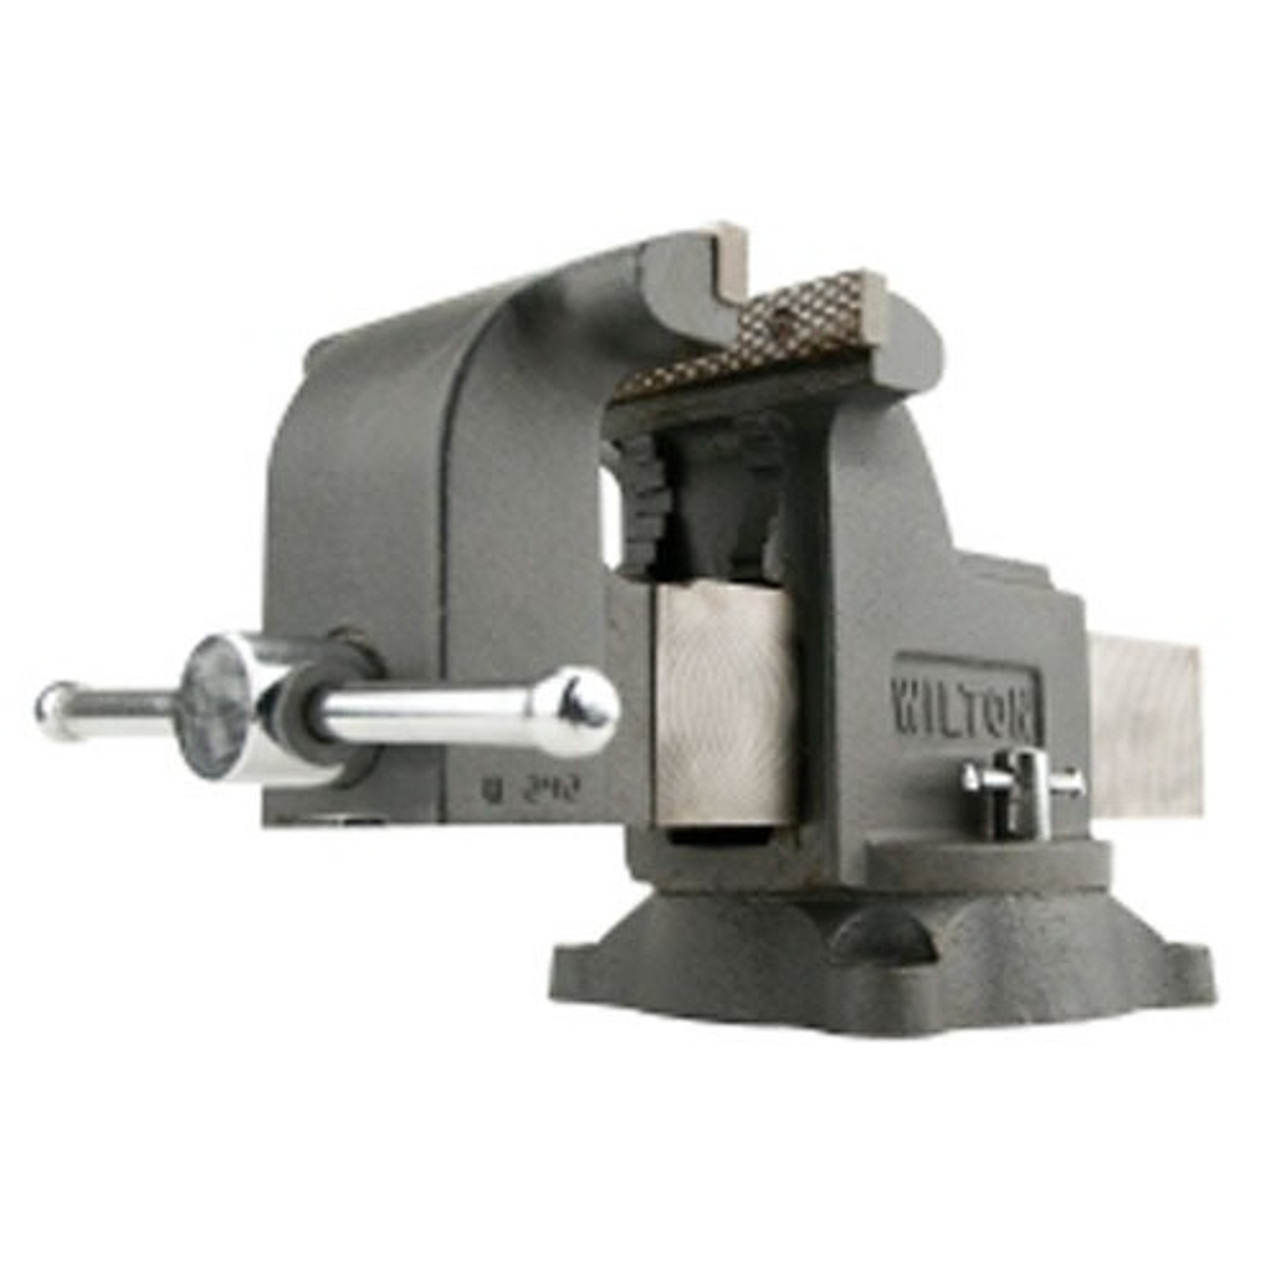 Jaw Bench Vise With Swivel Base Wilton 11105 5 In